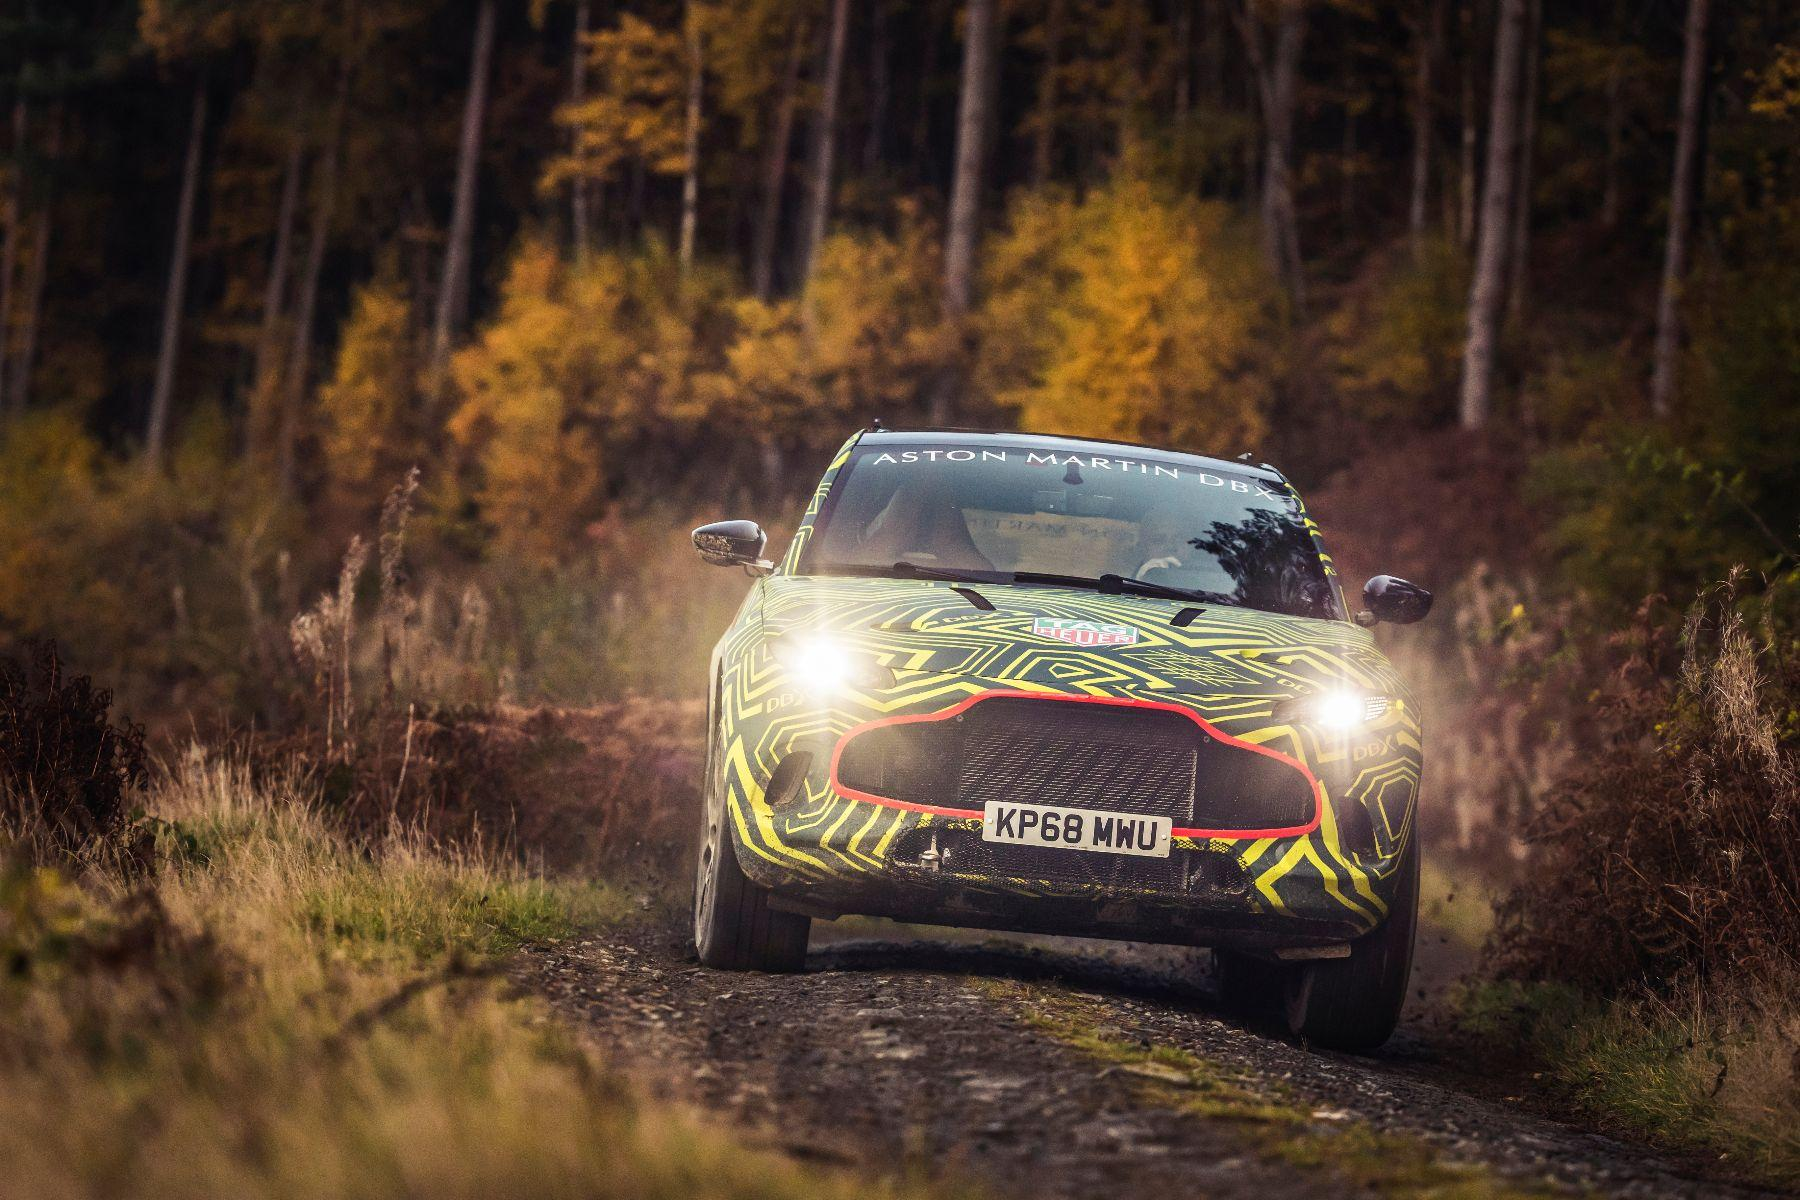 Super SUV revealed: first photos of 2019 Aston Martin DBX